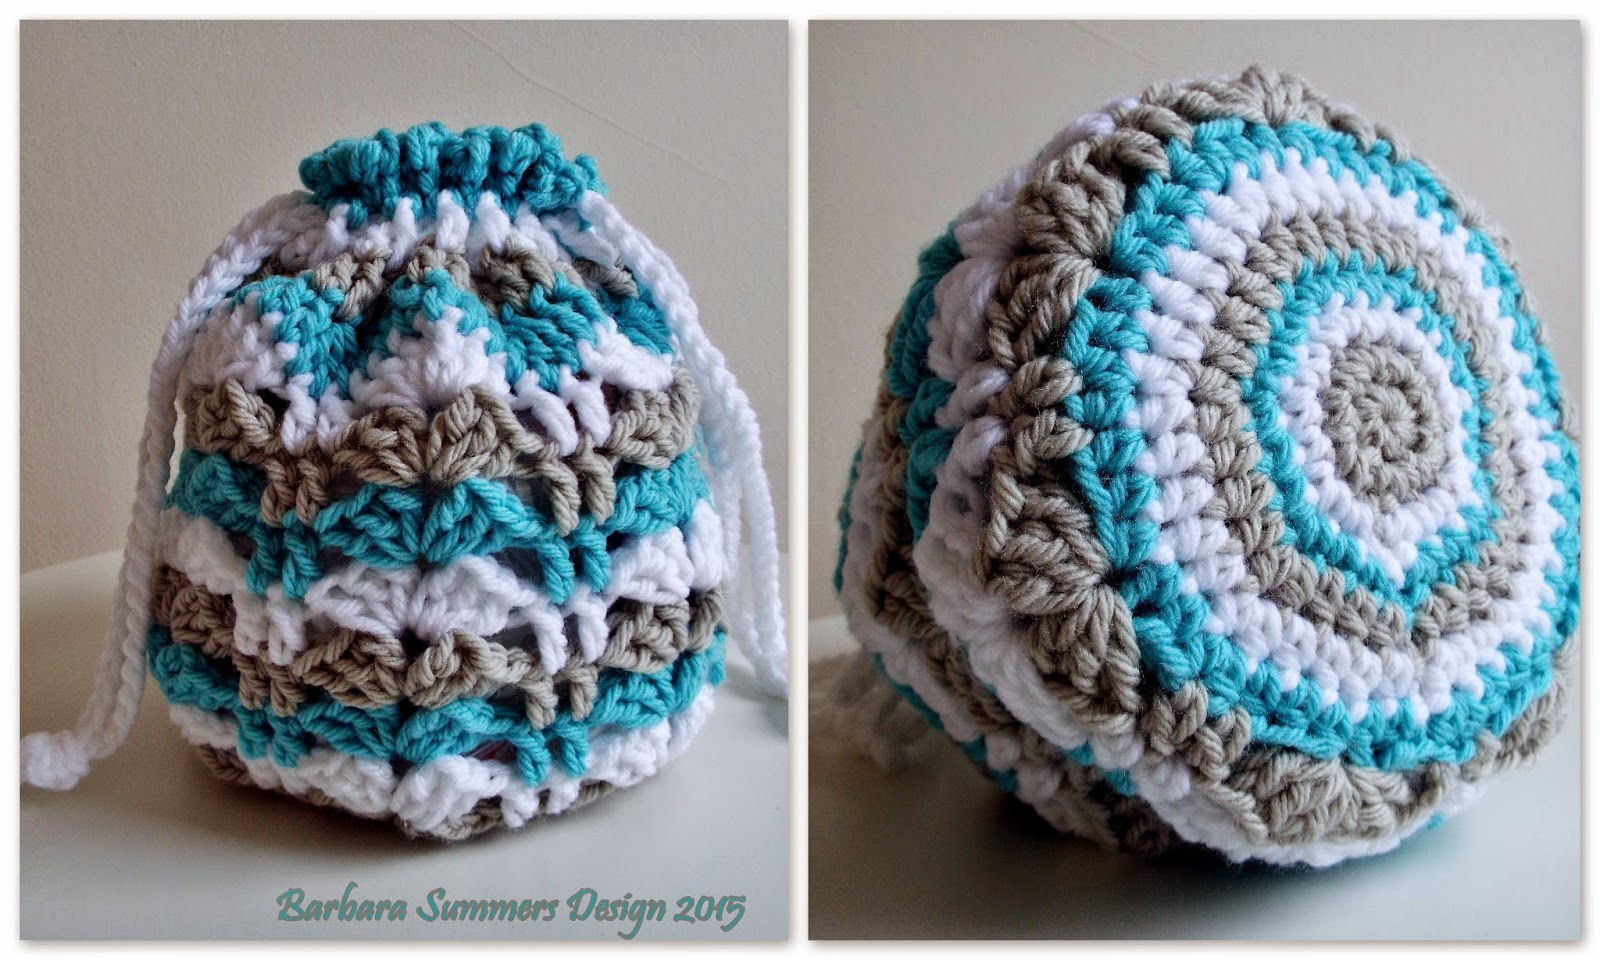 Crochet Backpack Bag Pattern : crochet bag, circular bag, fans, posts, how to crochet fans, how to ...